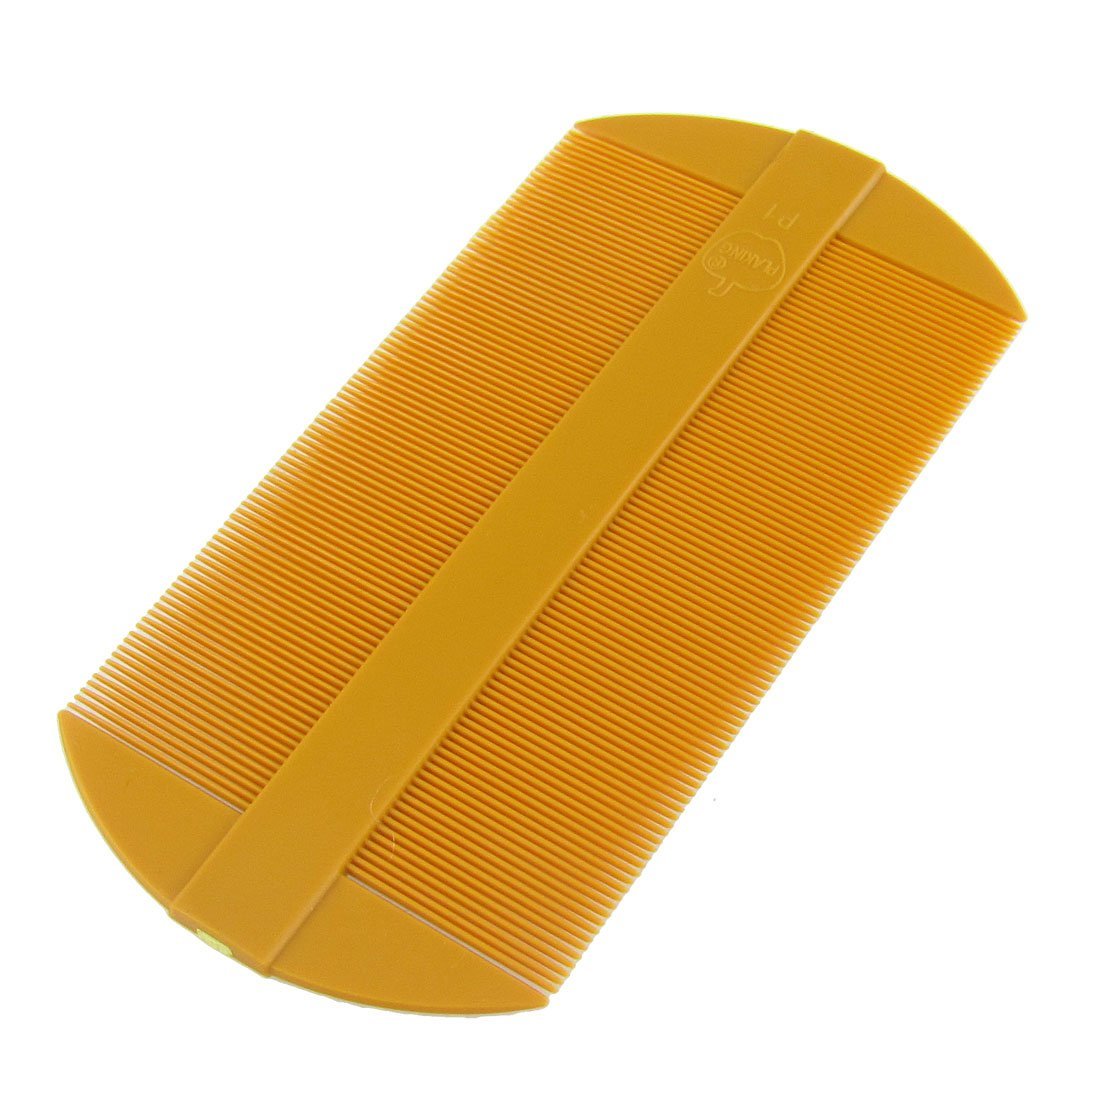 uxcell Amber Fine Tooth Portable Two Side Plastic Hair Comb 2 Pcs a12022800ux0345